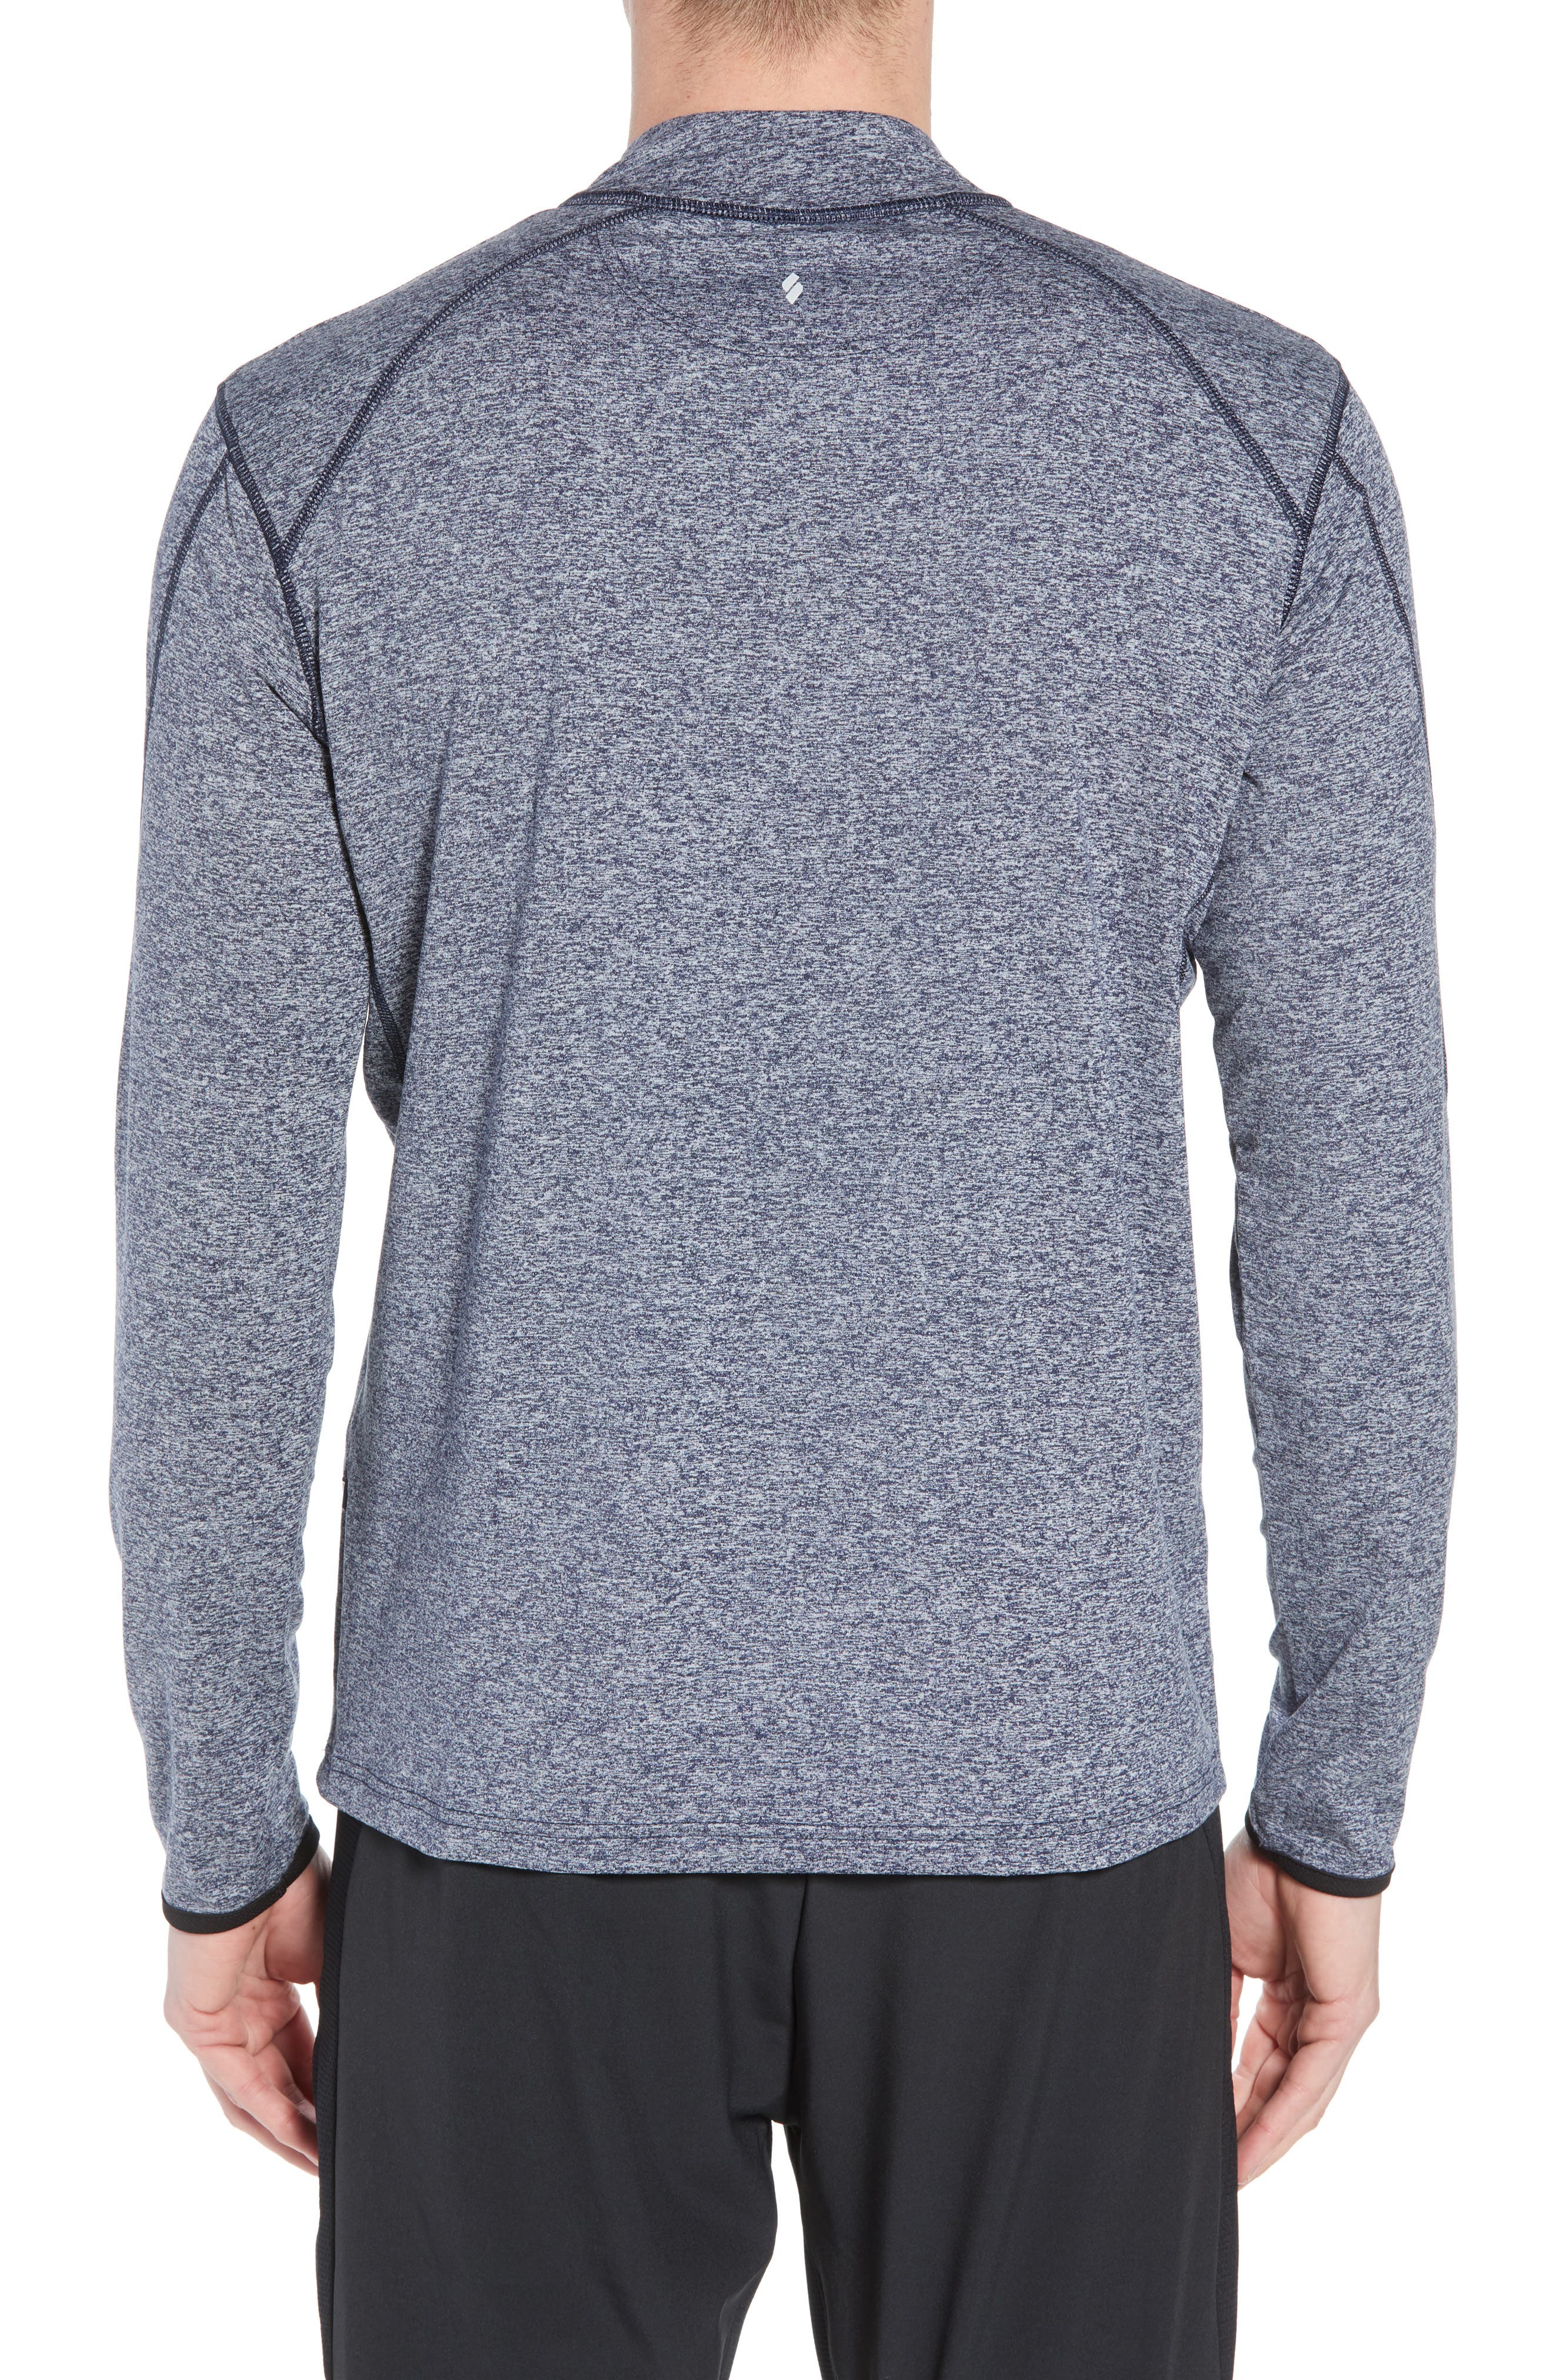 'Elevate' Moisture Wicking Stretch Quarter Zip Pullover,                             Alternate thumbnail 2, color,                             Heather Navy/ Navy